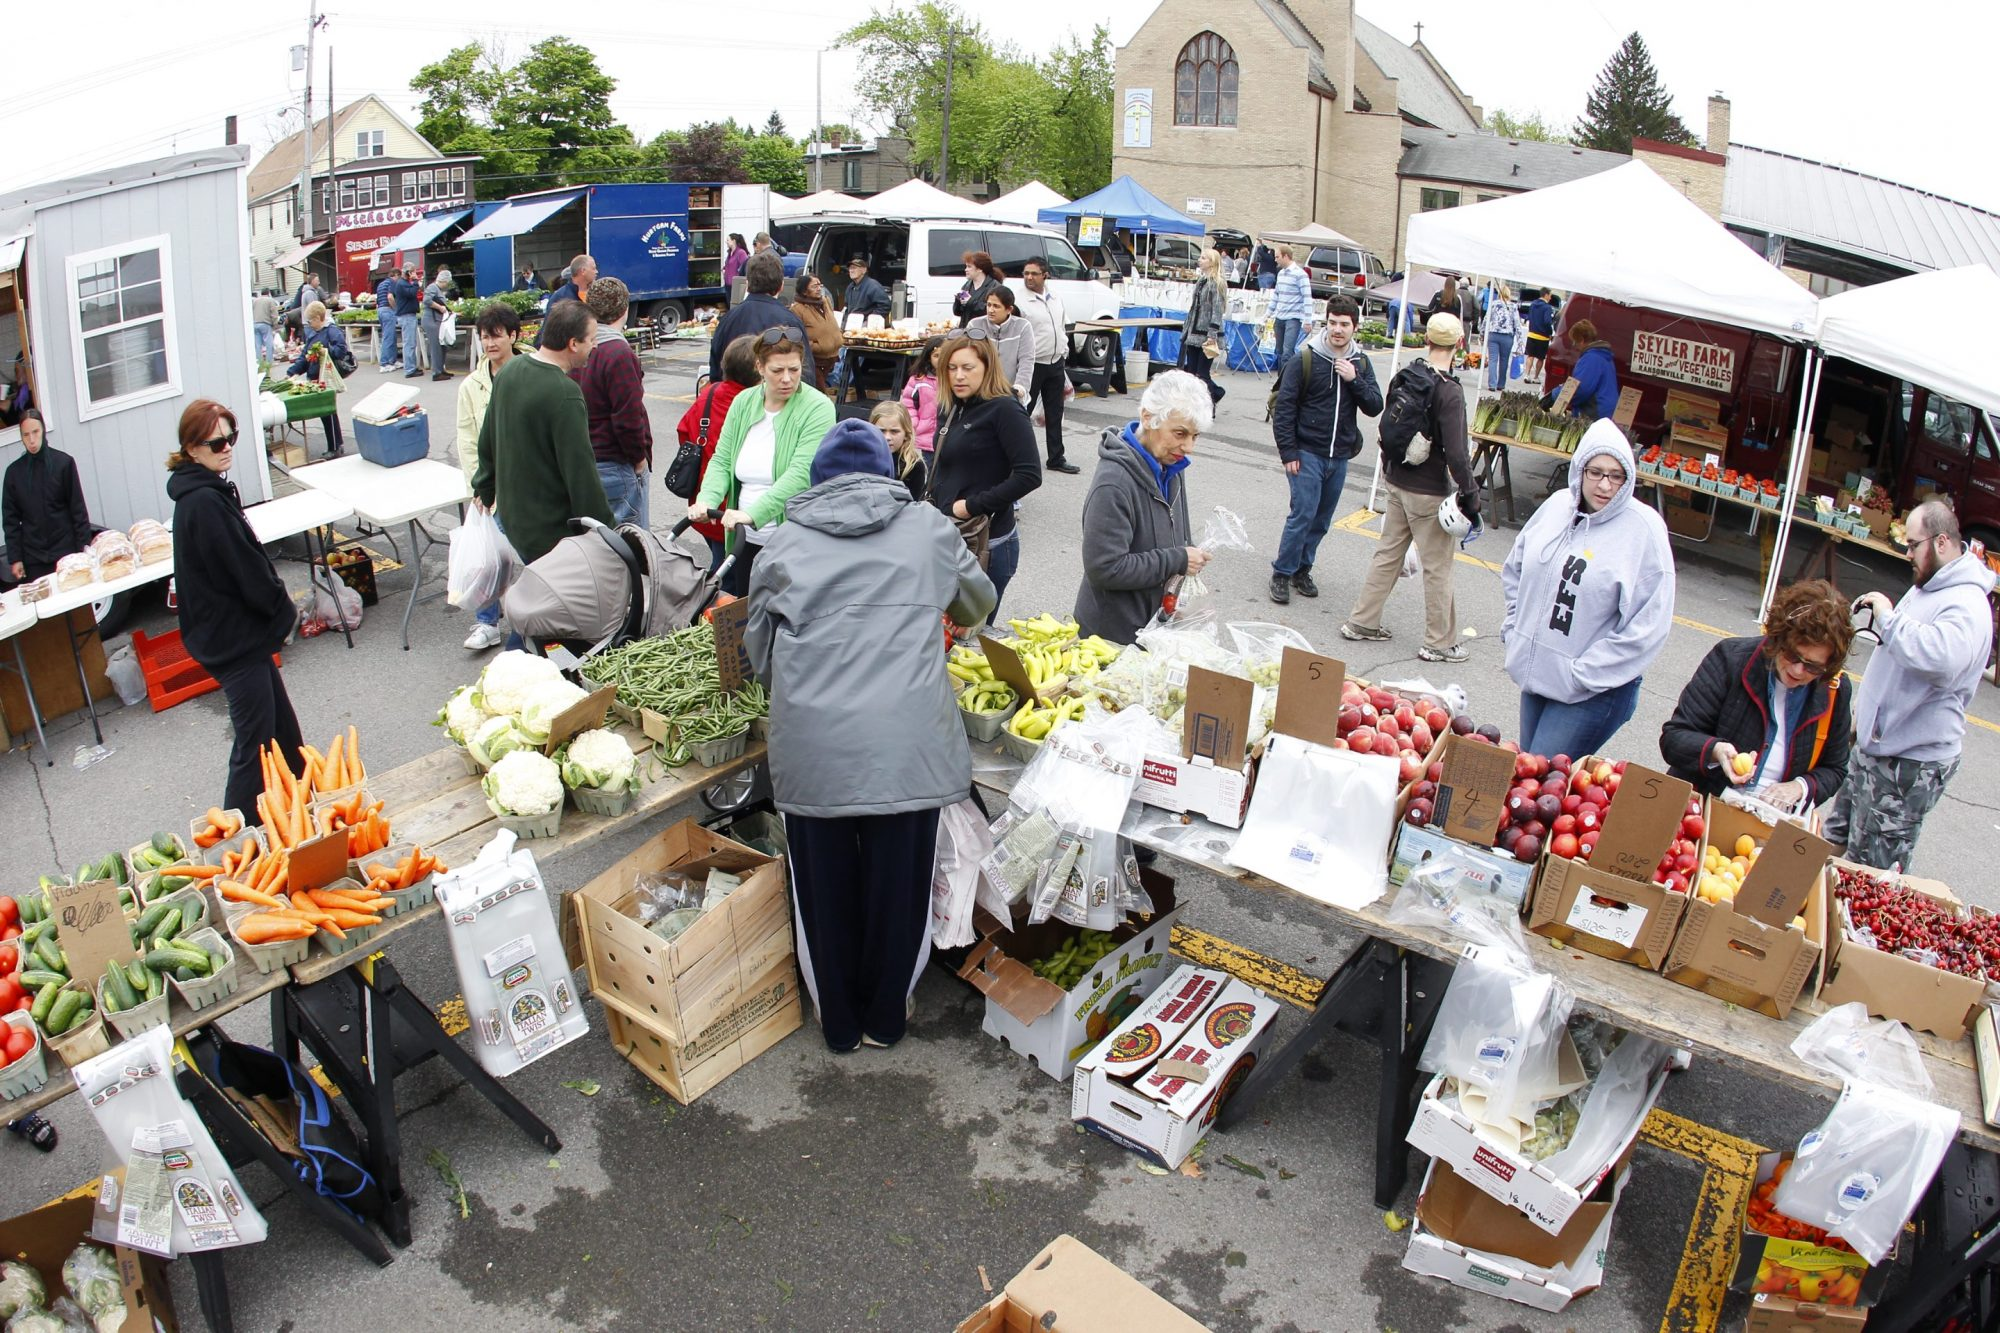 Mobile, farmers' markets more helpful than groceries in low-income neighborhoods, study finds